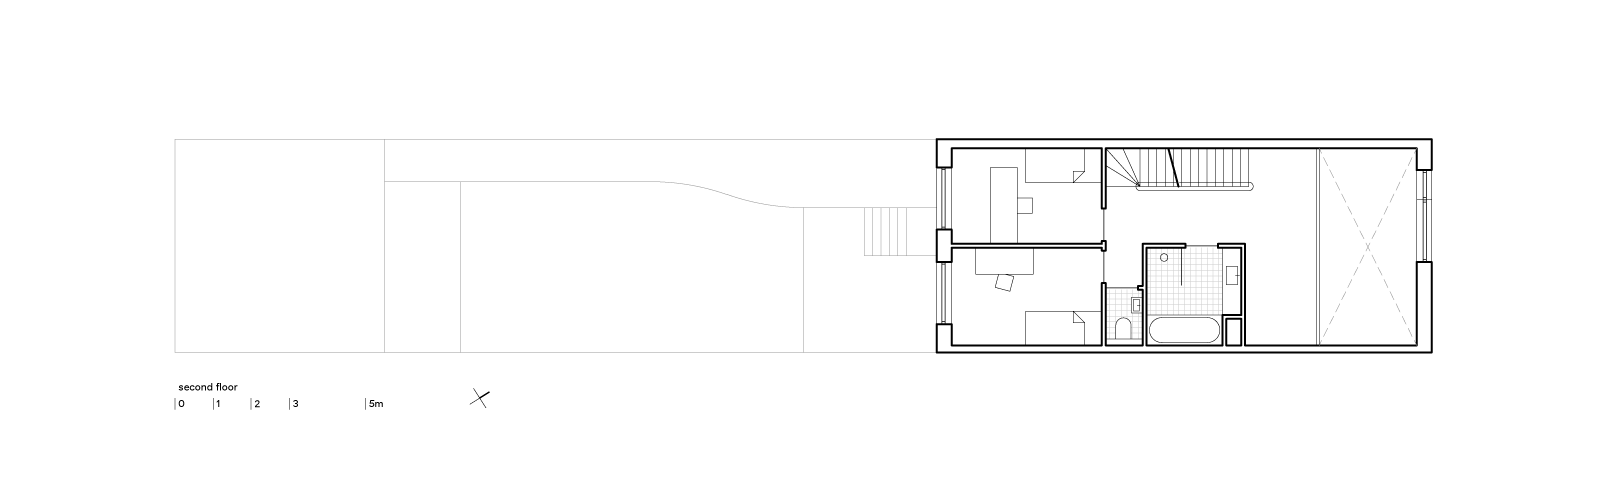 blue house by BETA second floor plan Evert Klinkenberg Auguste Gus van Oppen